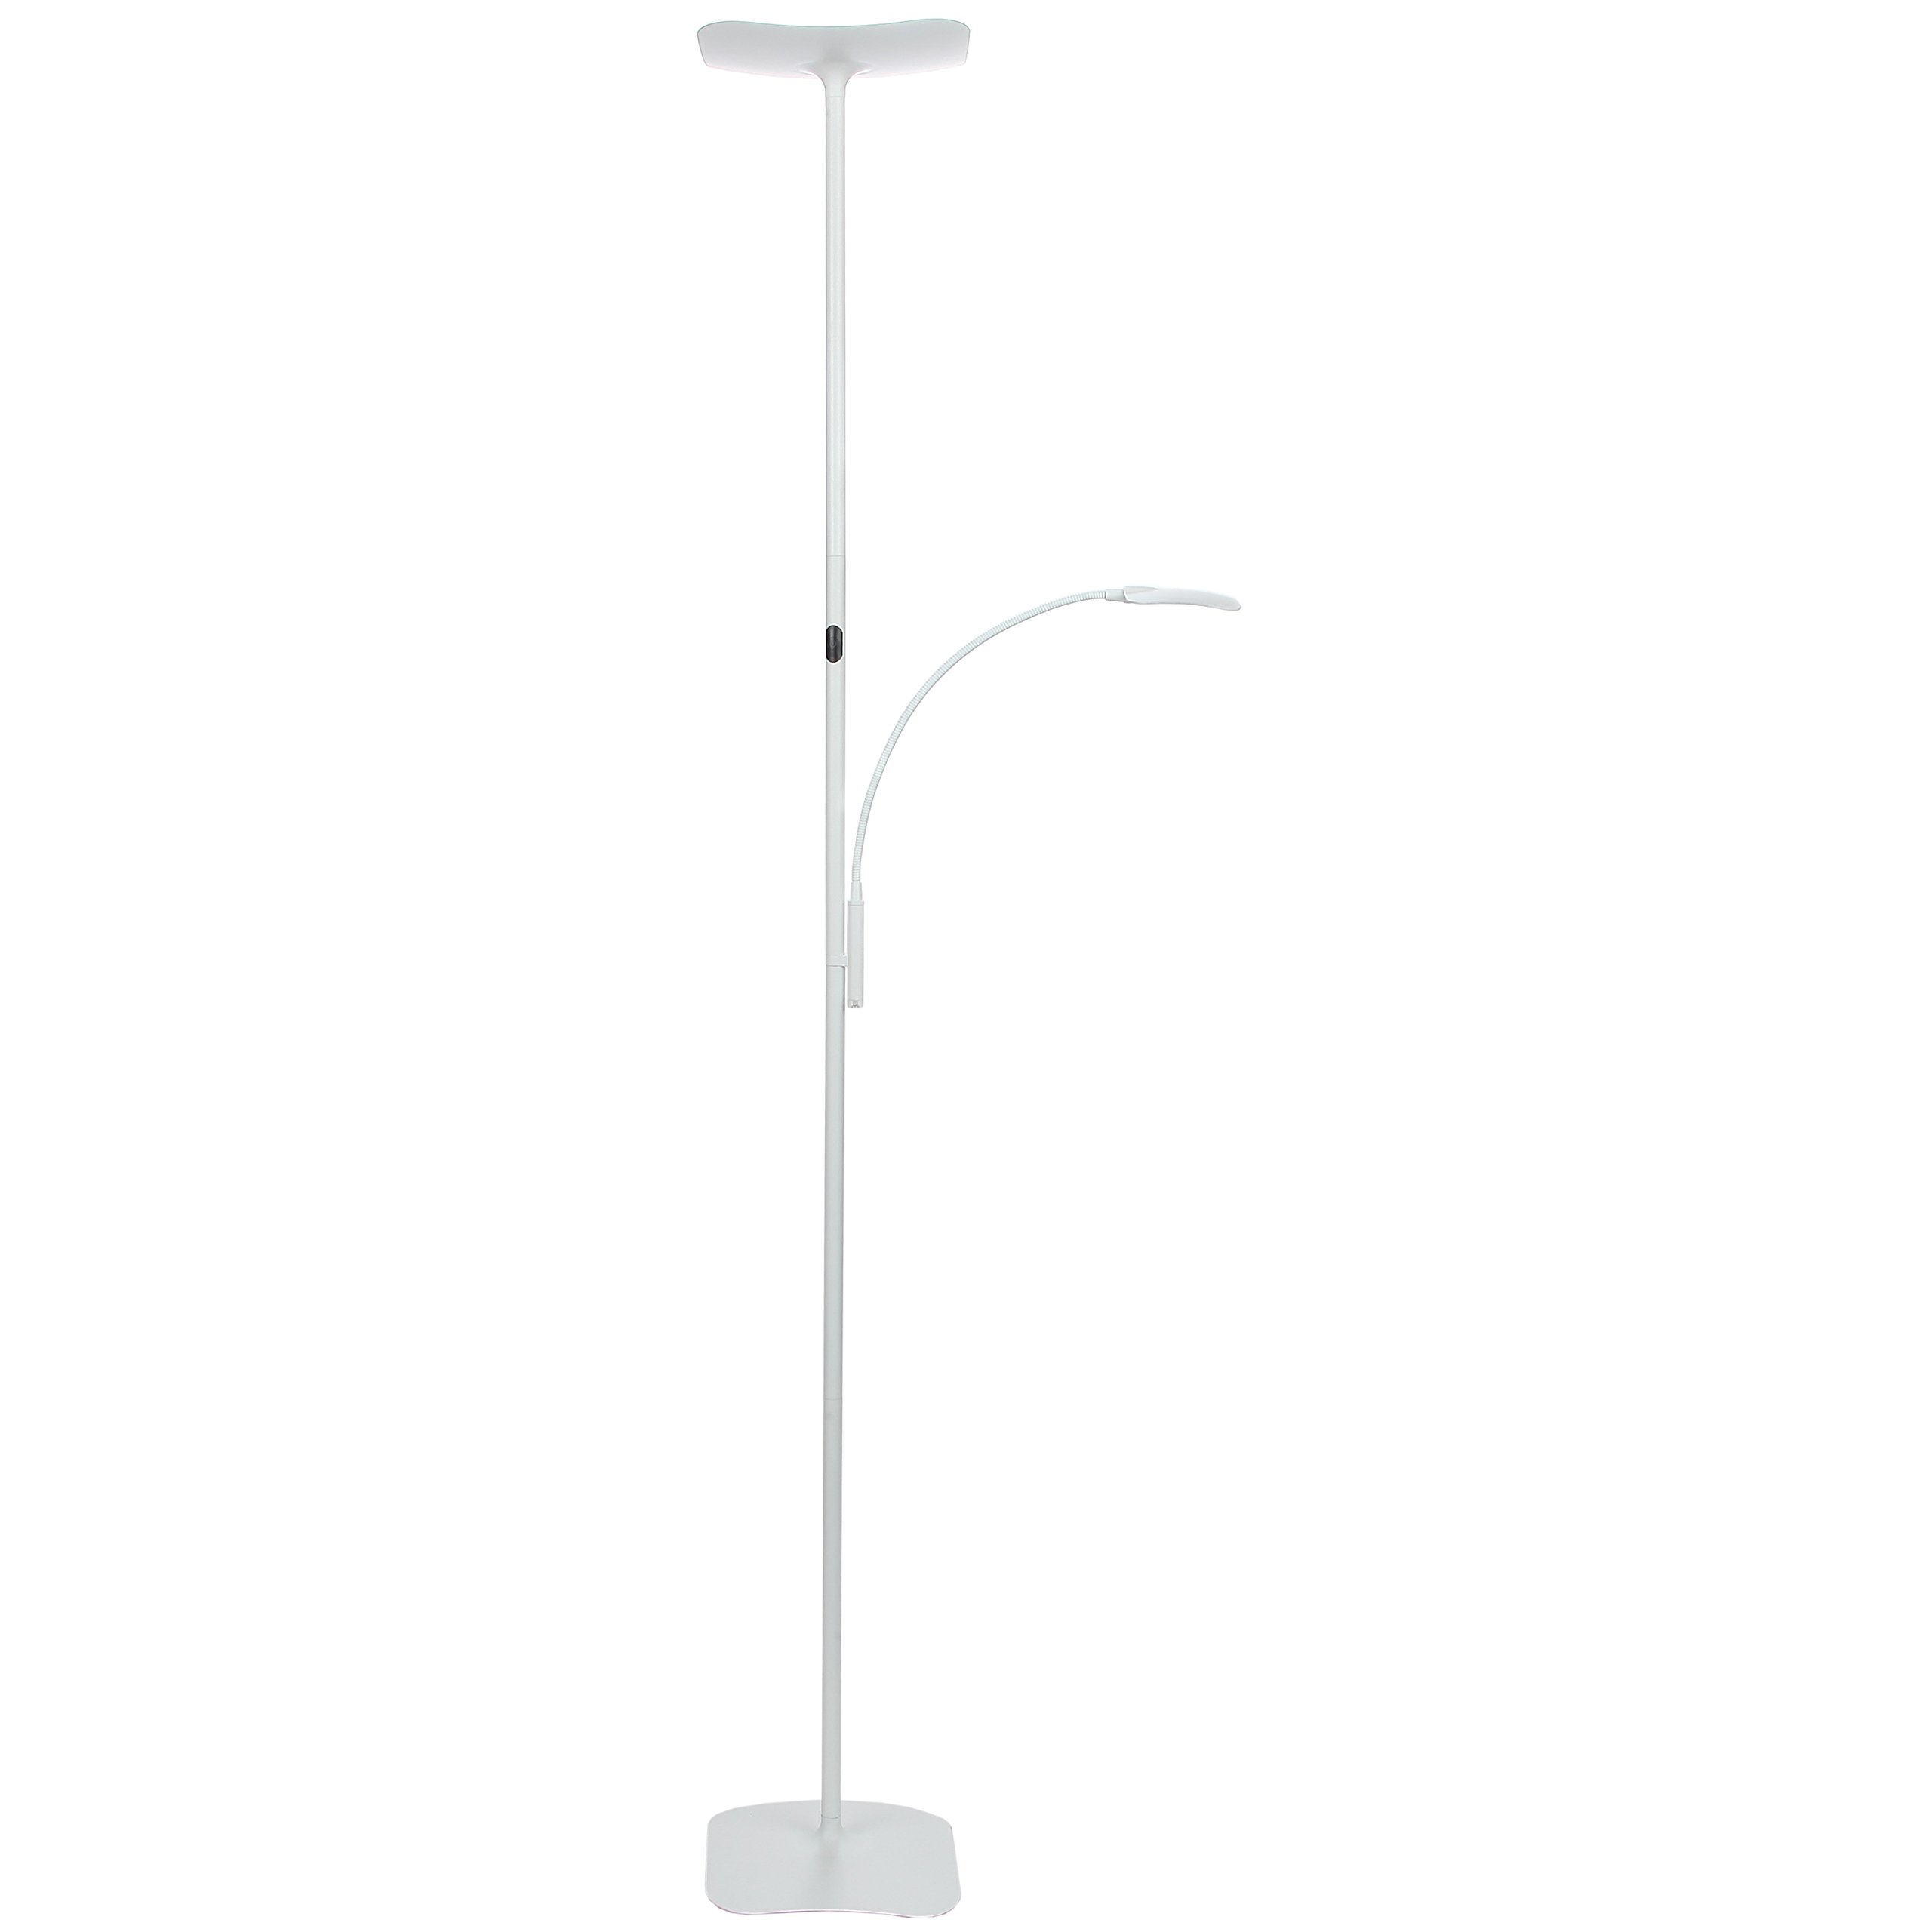 Brightech Sky Plus- LED Torchiere Floor Lamp – 33 W Energy Saving, Dimmable, Adjustable, Reading Lamp– Modern Tall Standing Pole Uplight for Light Living Room, Dorm, Bedroom or Office – Alpine White